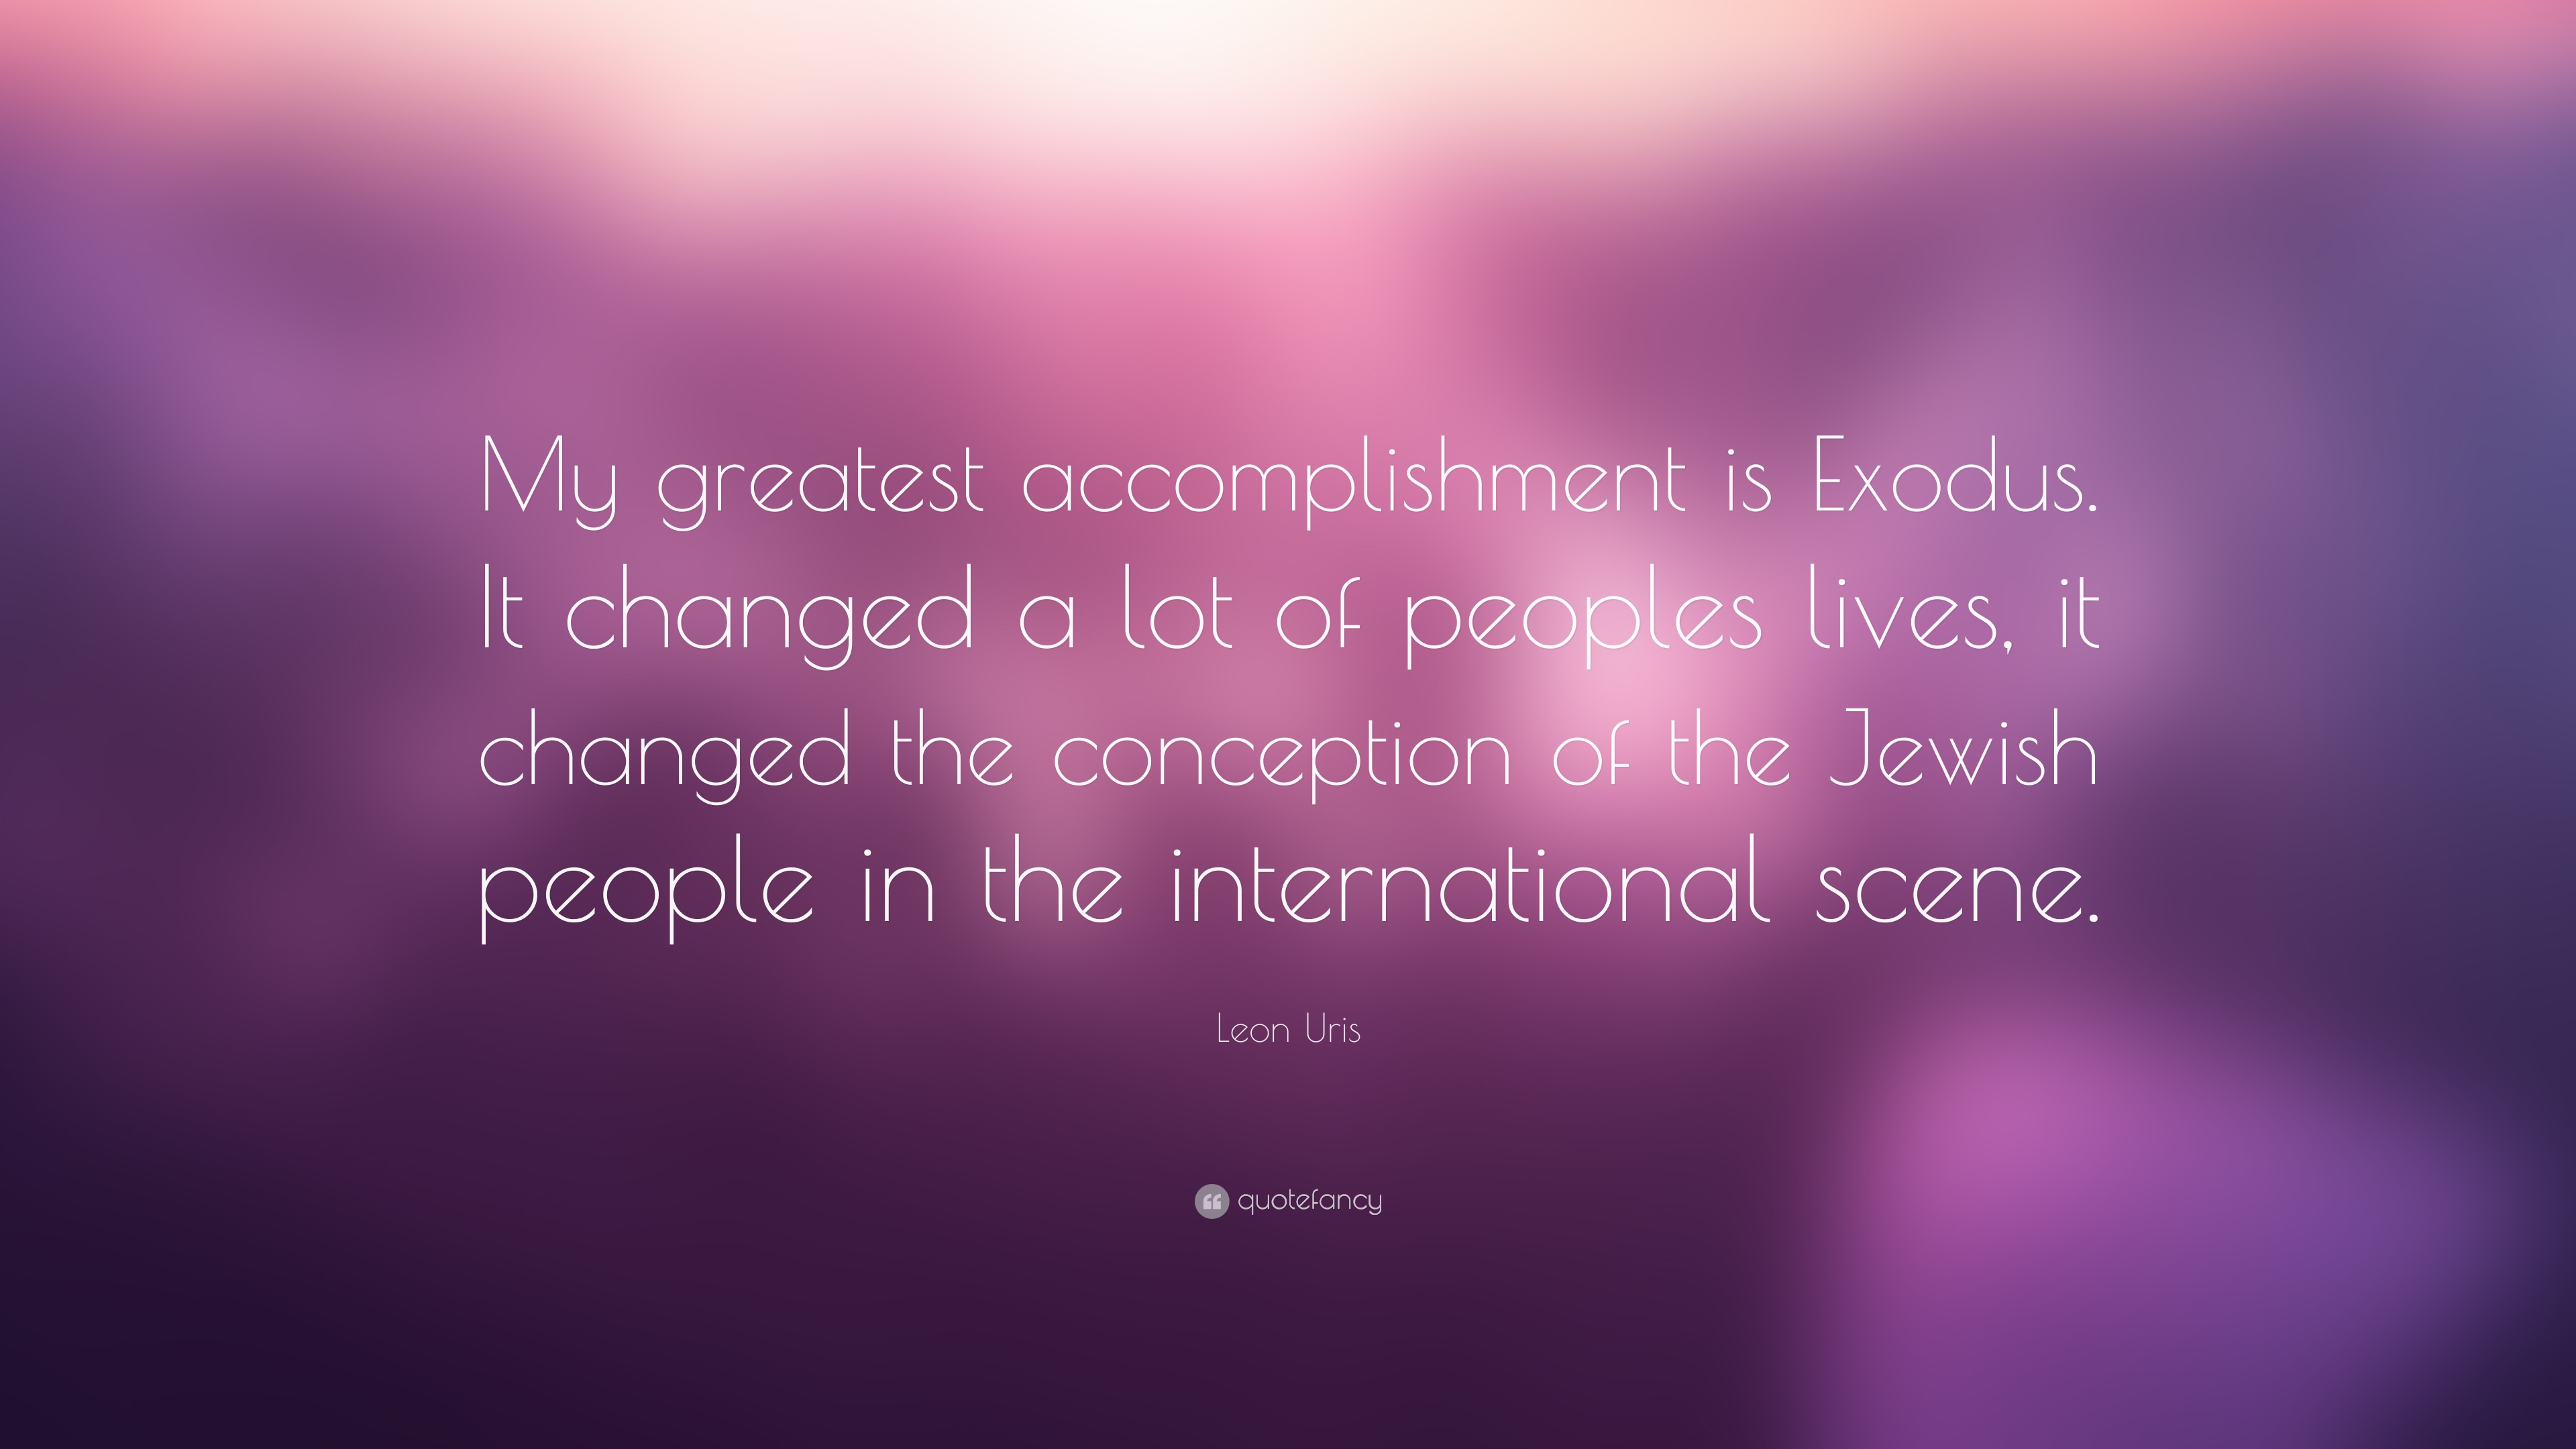 leon uris quotes 39 quotefancy leon uris quote my greatest accomplishment is exodus it changed a lot of